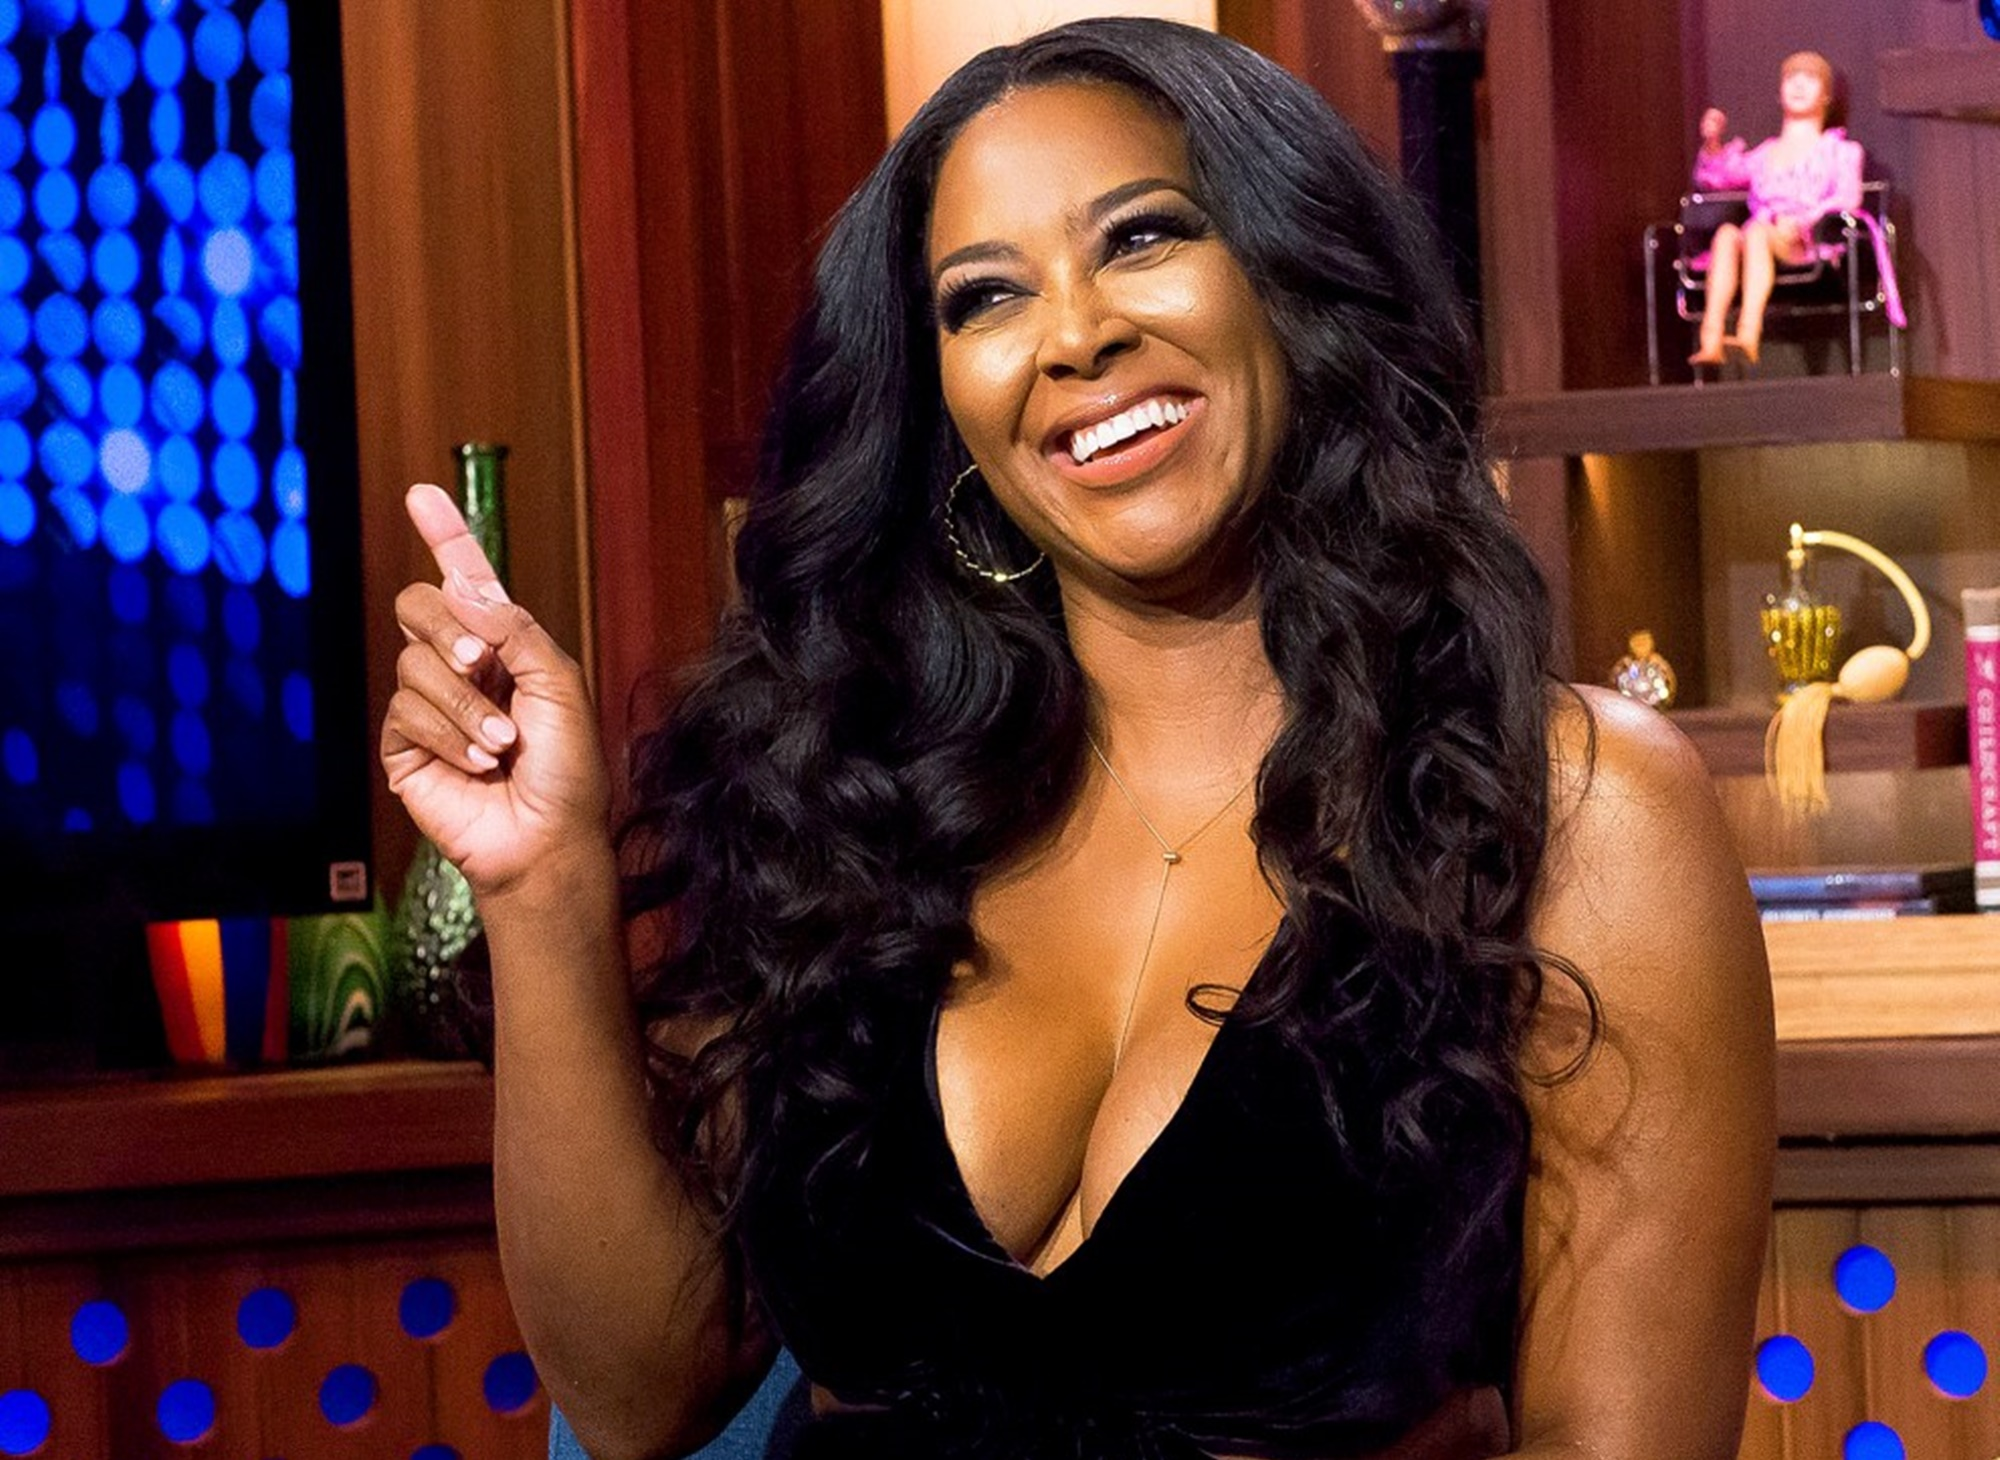 Kenya Moore Returns To The RHOA Series Making Her Fans Insanely Excited